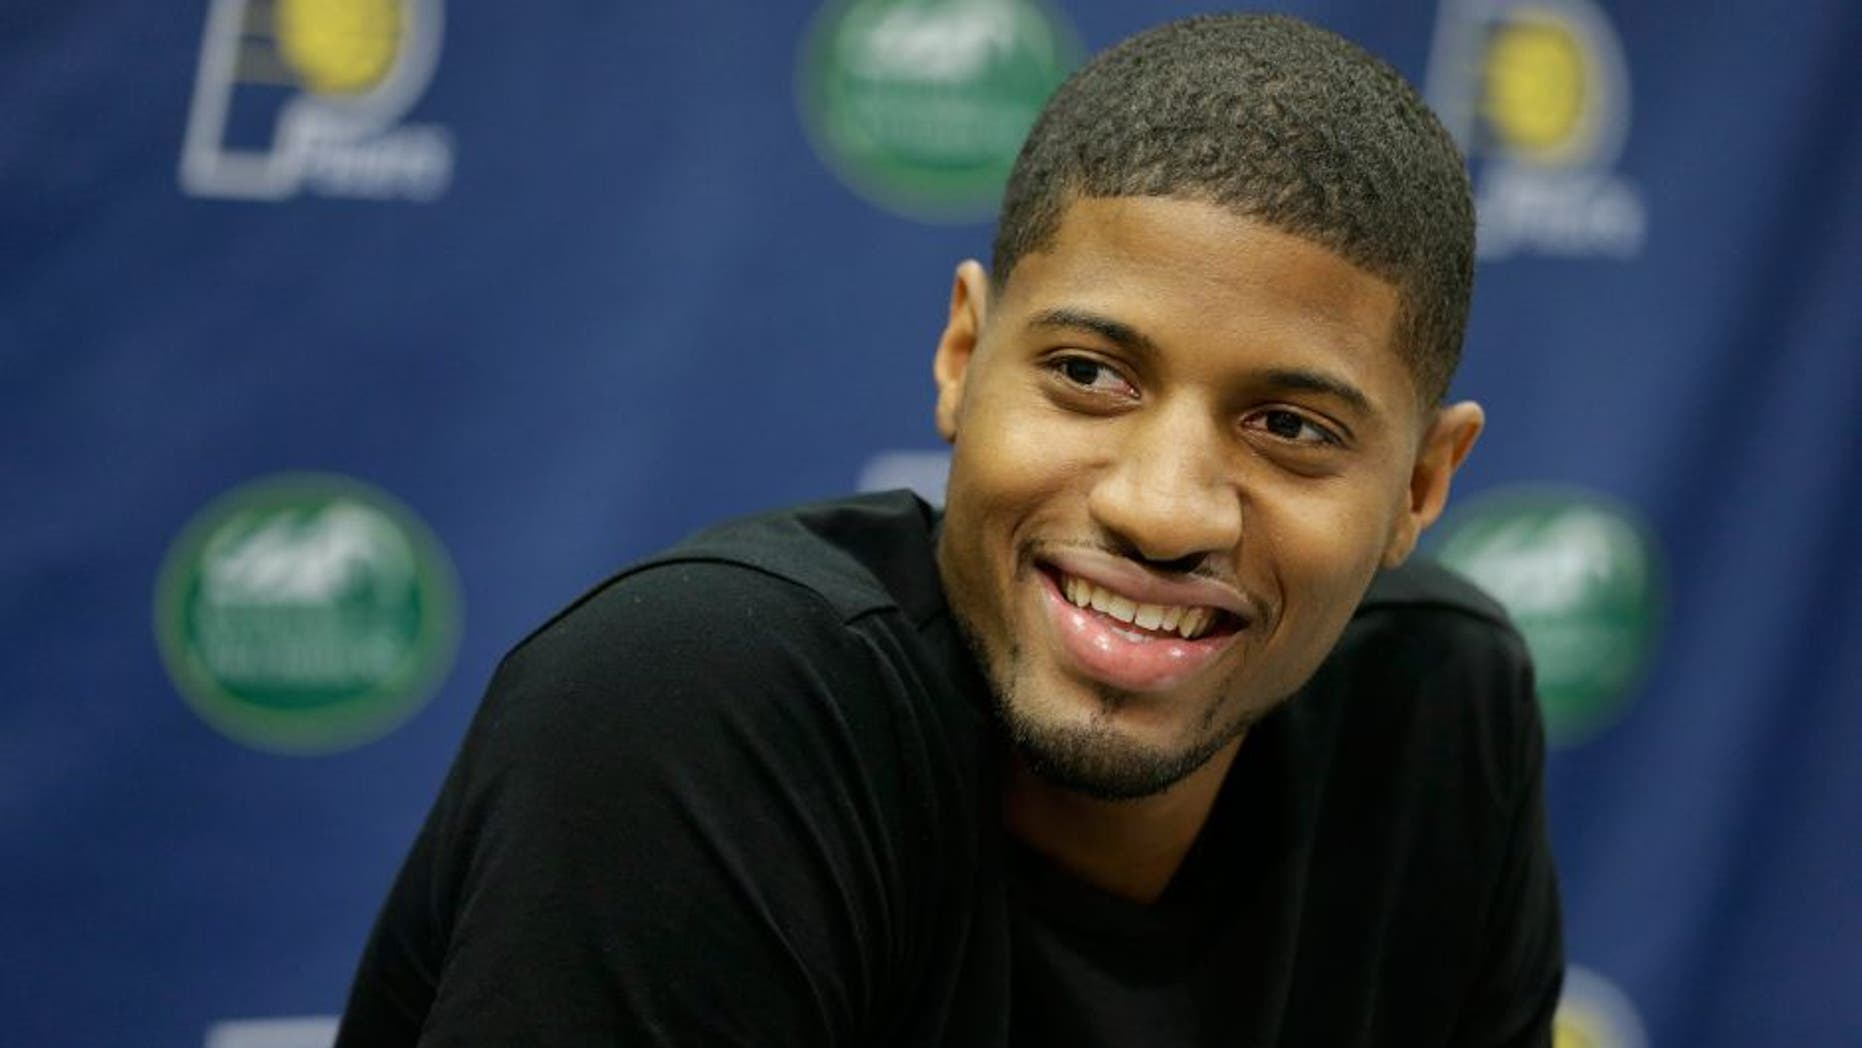 """Indiana Pacers' Paul George responds to a question during a news conference Friday, Aug. 15, 2014, in Indianapolis. George hopes to make it back on the court next season despite the """"freak accident"""" that caused a compound fracture in his right leg. (AP Photo/Darron Cummings)"""